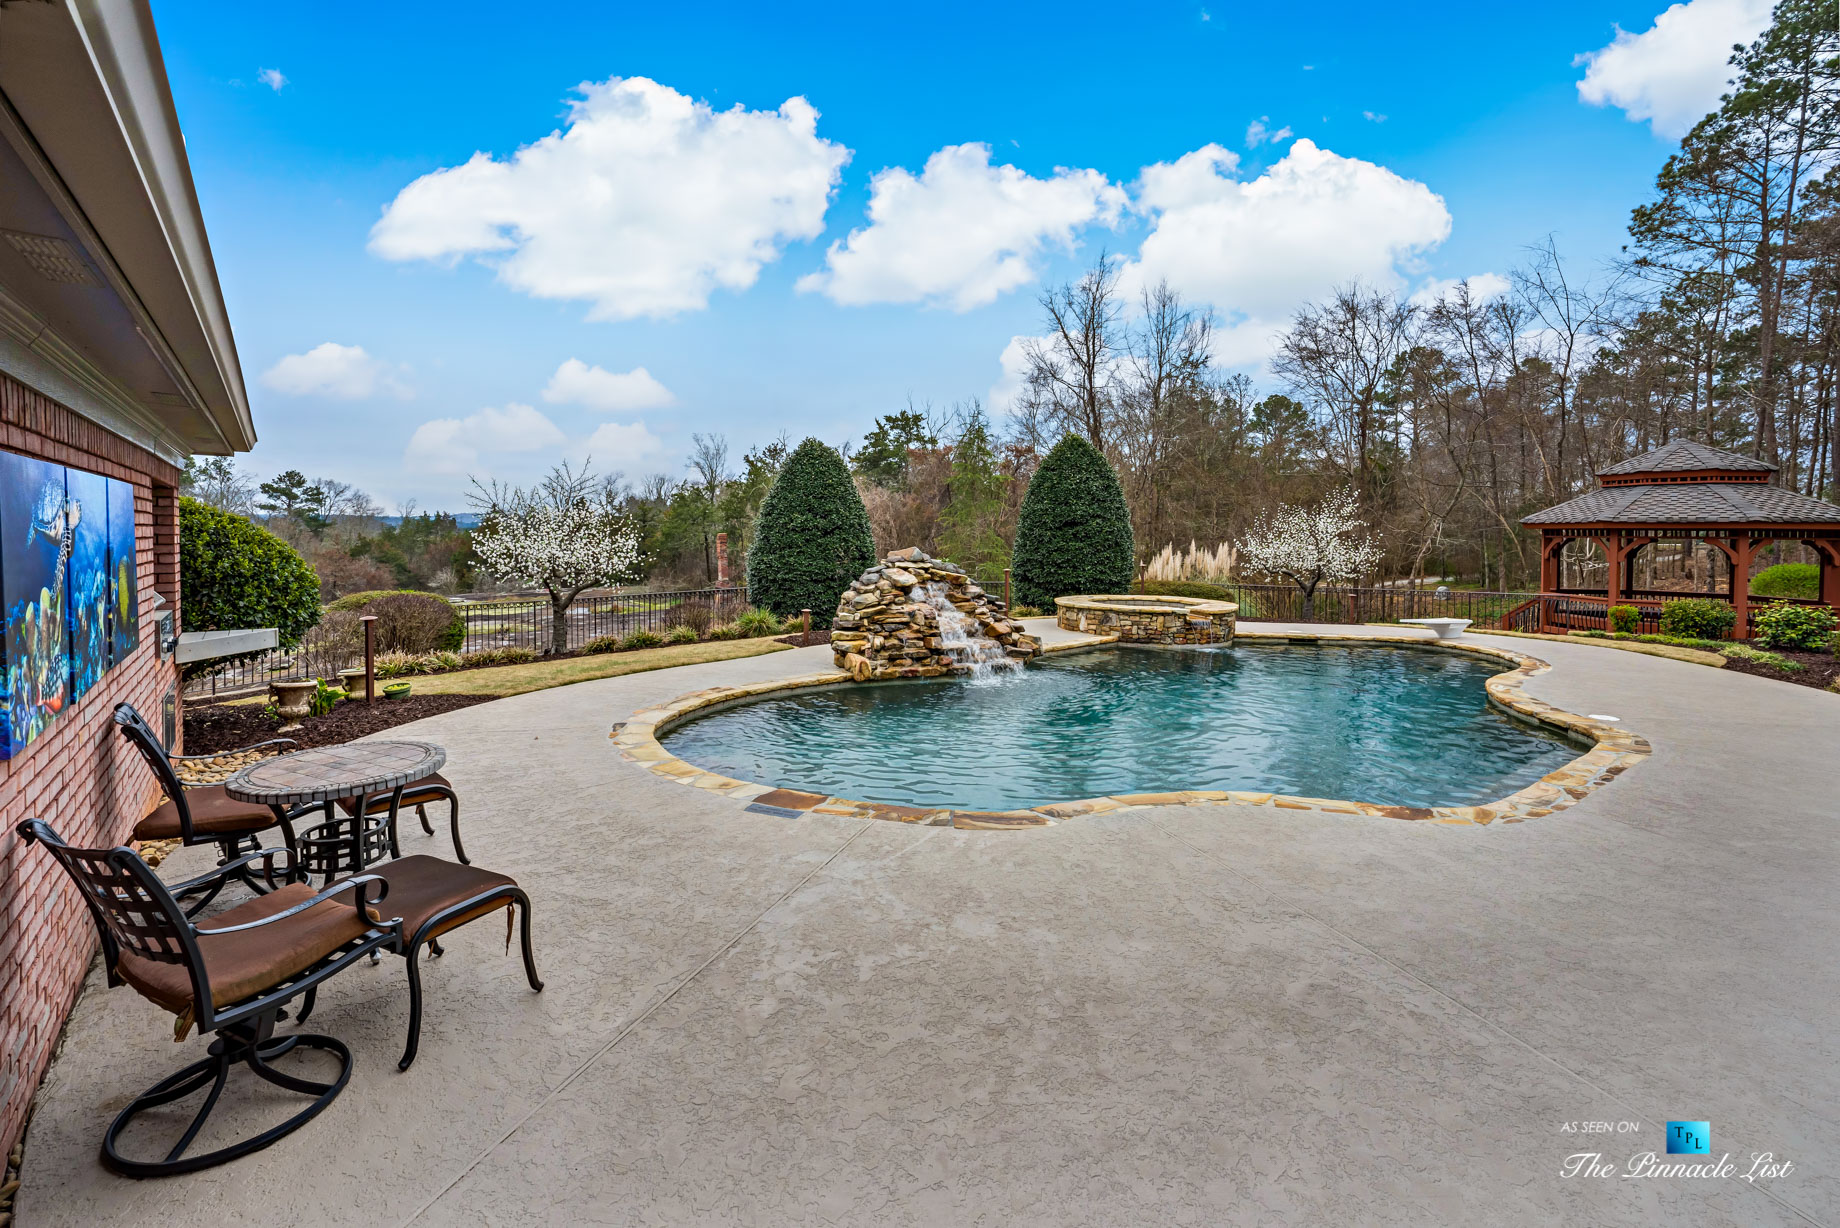 2219 Costley Mill Rd NE, Conyers, GA, USA – Backyard Pool and Waterfall – Luxury Real Estate – Equestrian Country Home